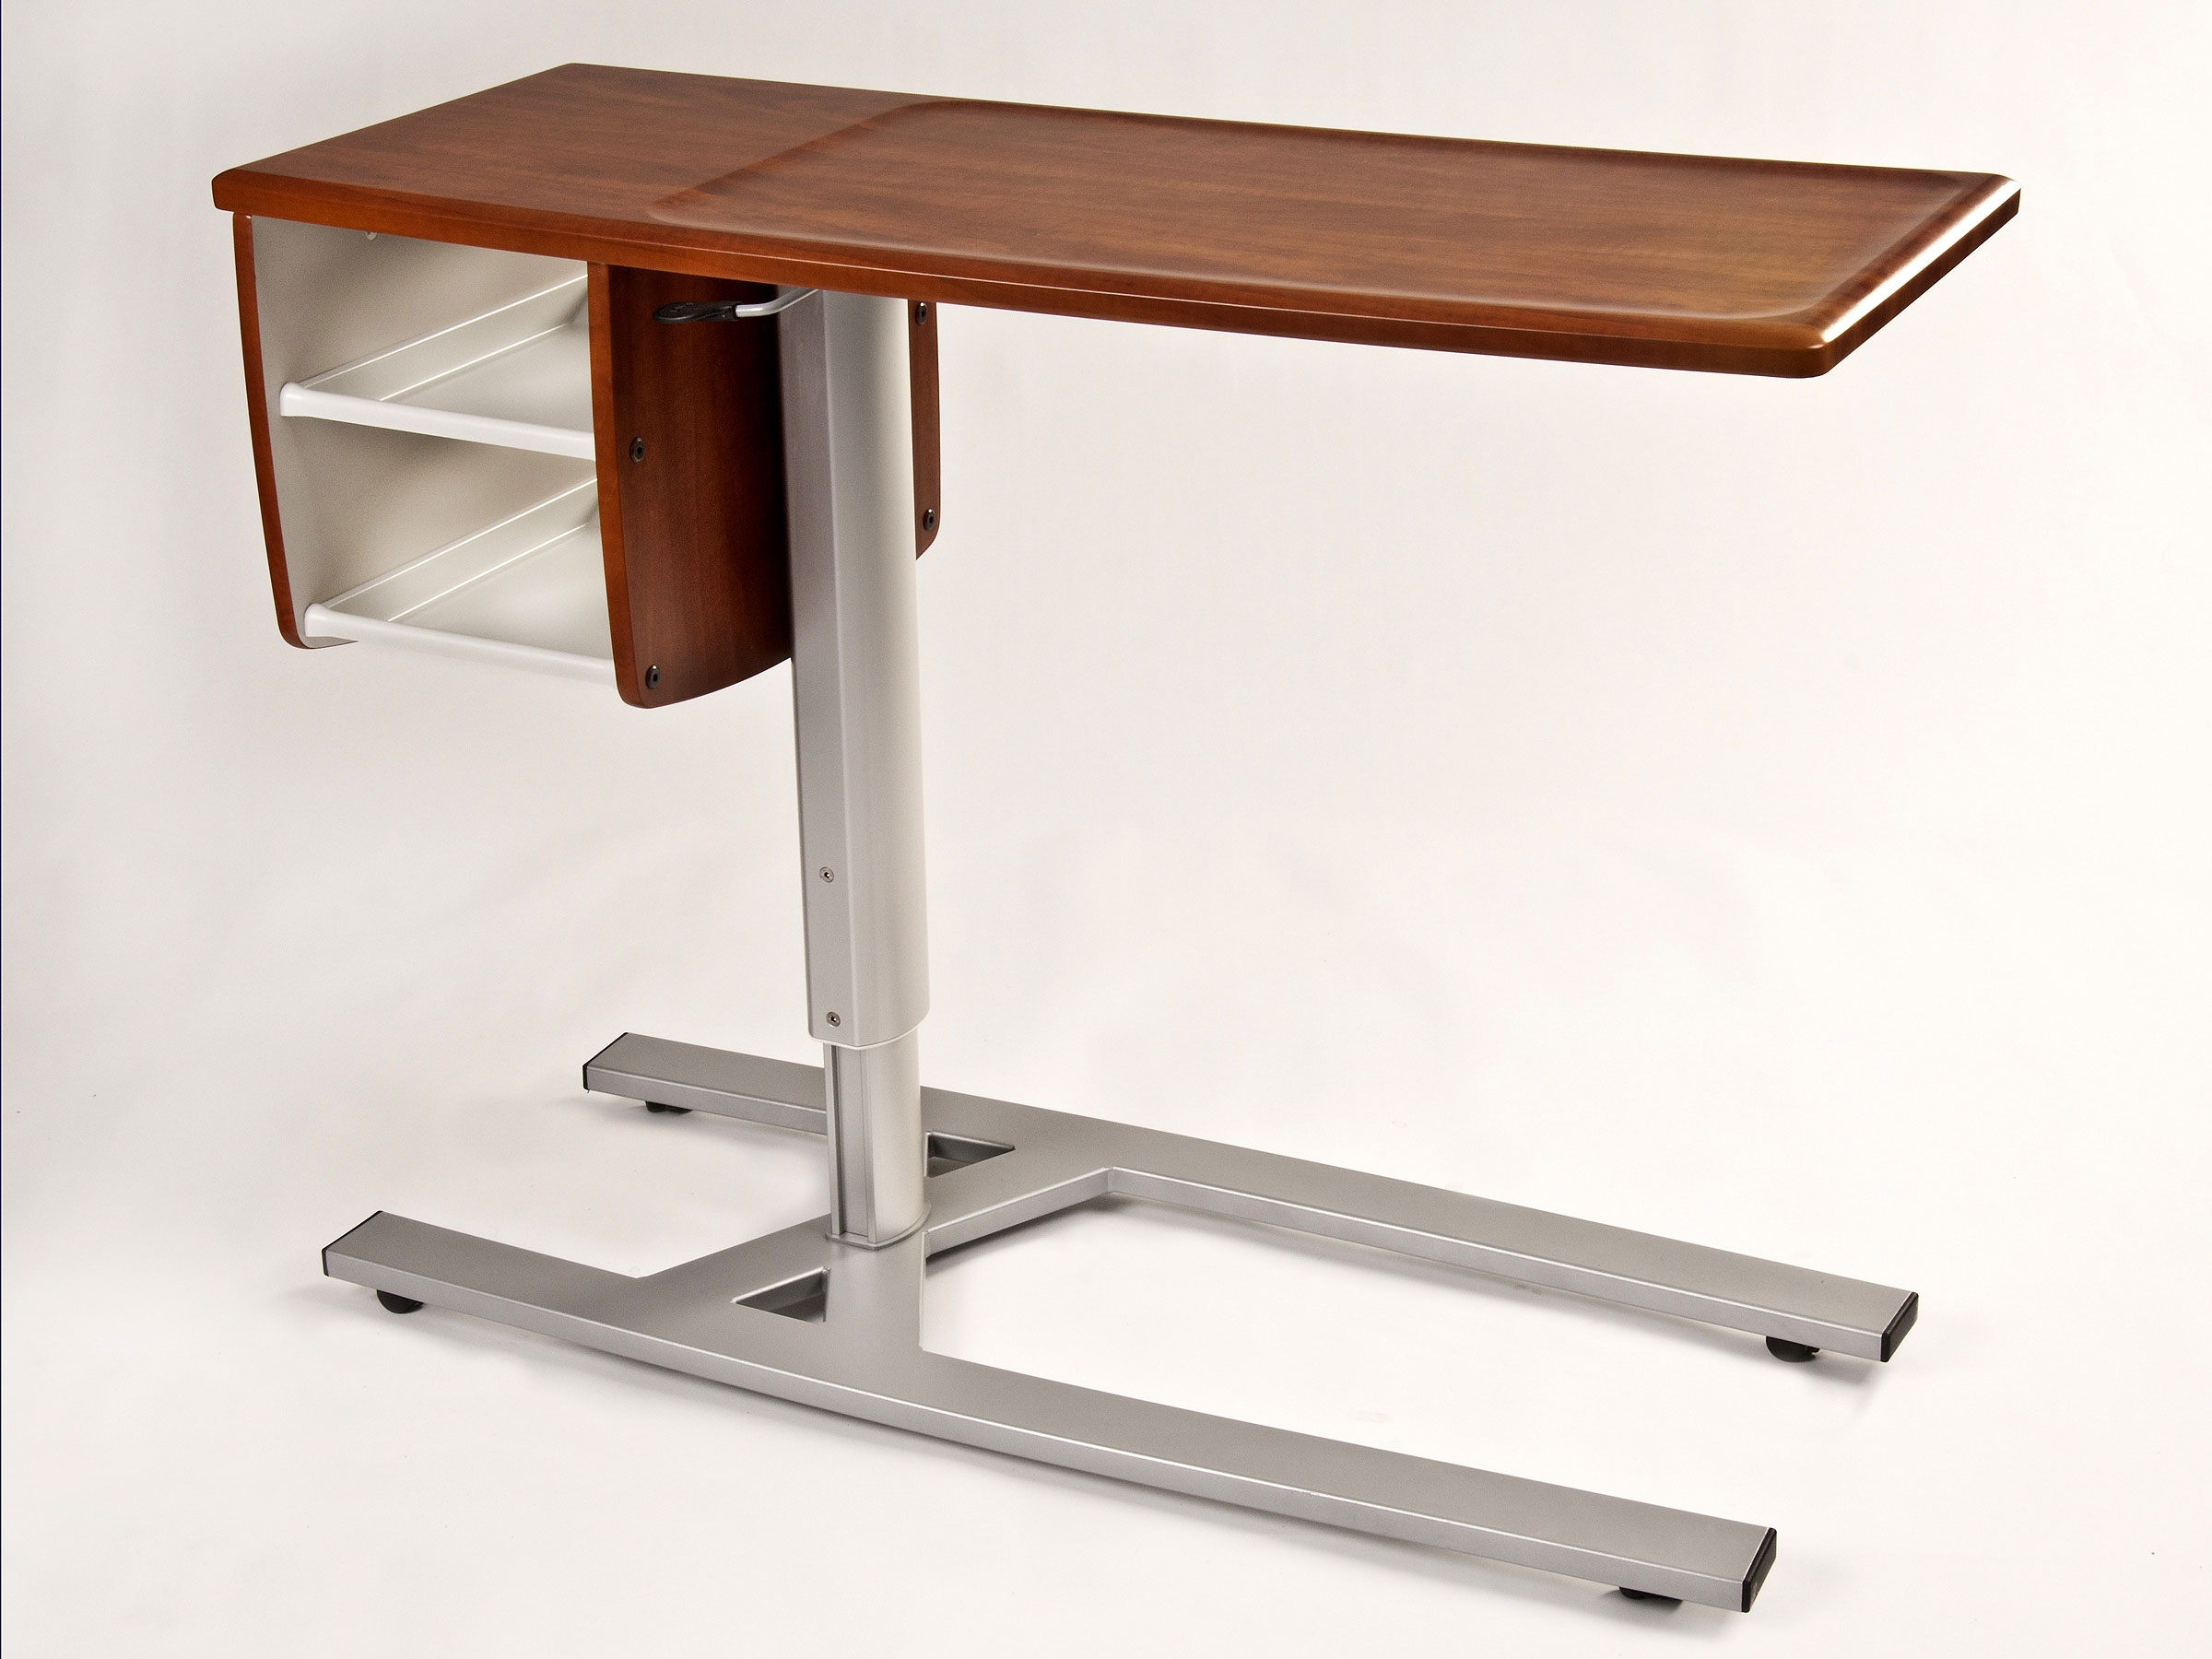 Image of: overbed table